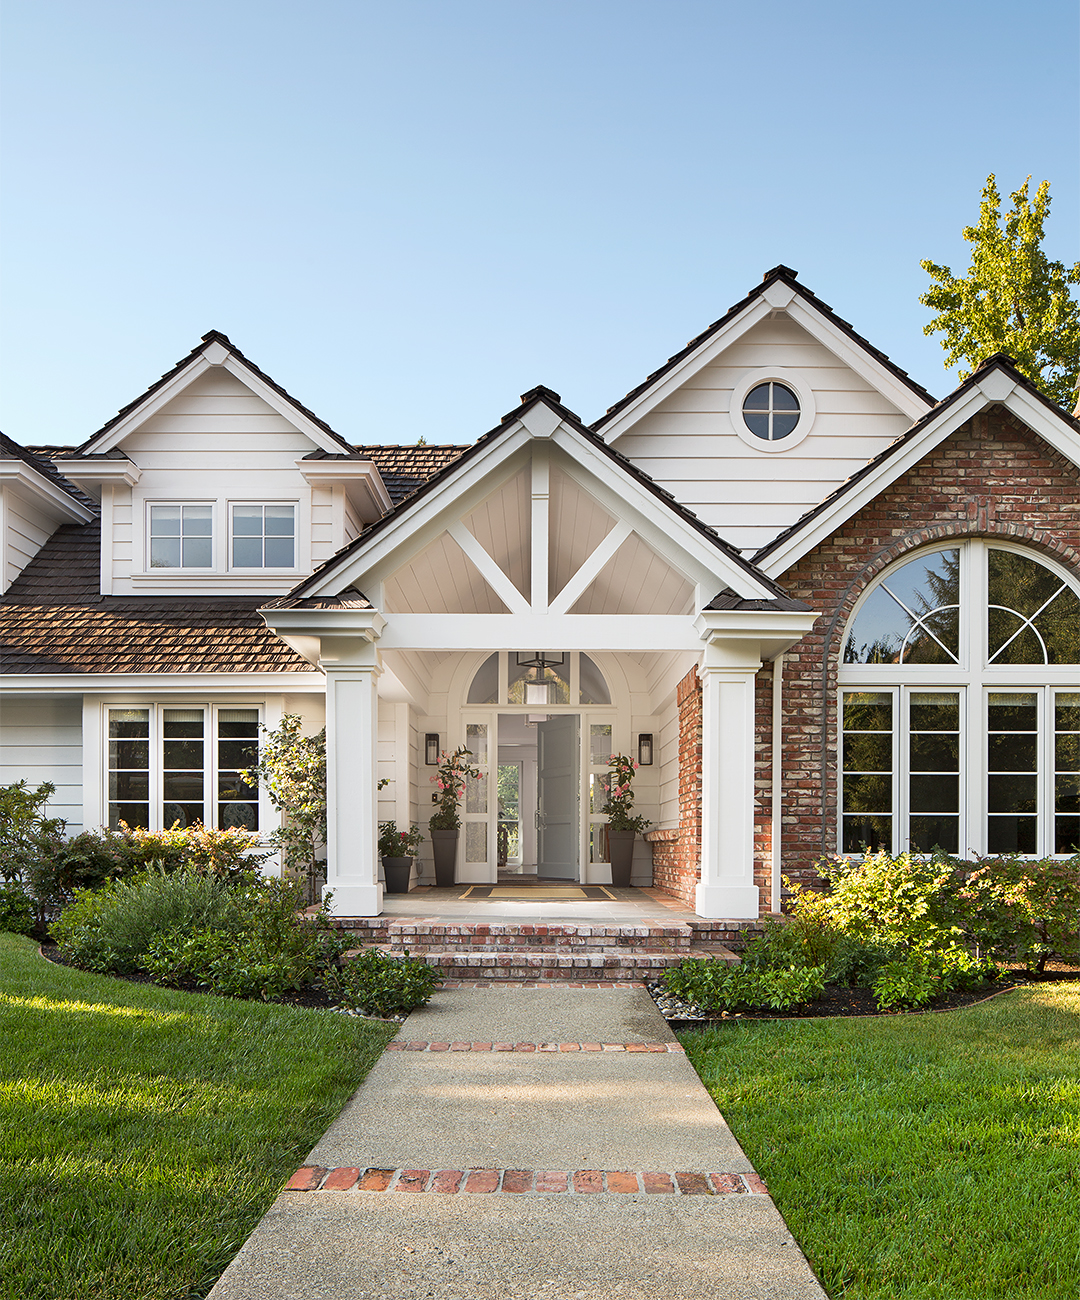 Home Exterior Makeovers You Have to See to Believe on flat curb street, flat front beach house, flat front bungalow house, flat front stone house, flat front brick house, flat front row house,